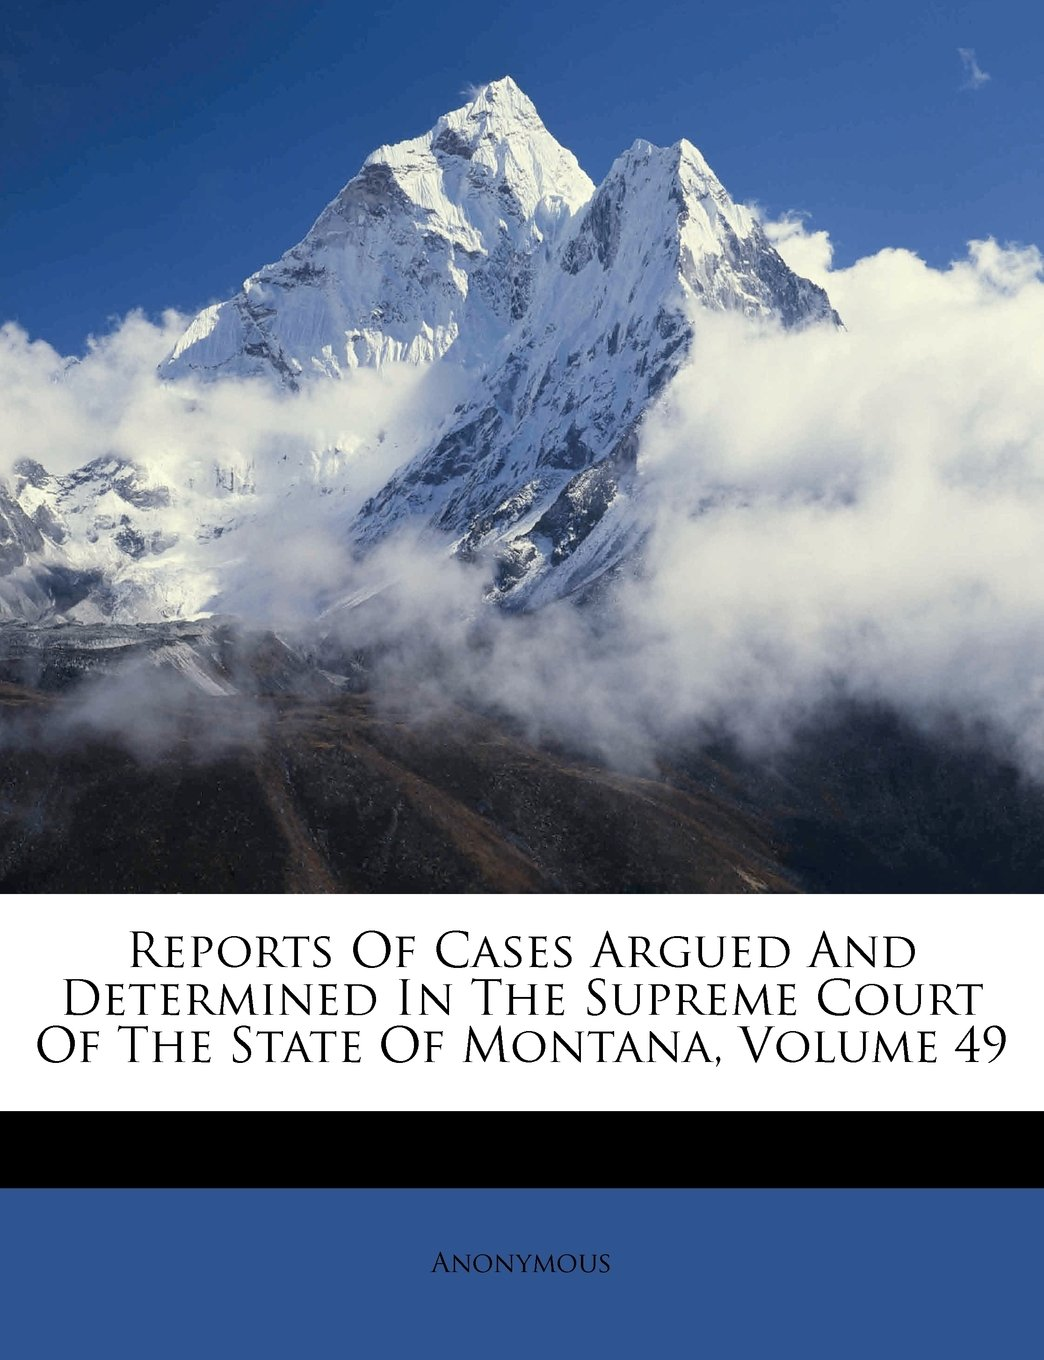 Reports Of Cases Argued And Determined In The Supreme Court Of The State Of Montana, Volume 49 ebook